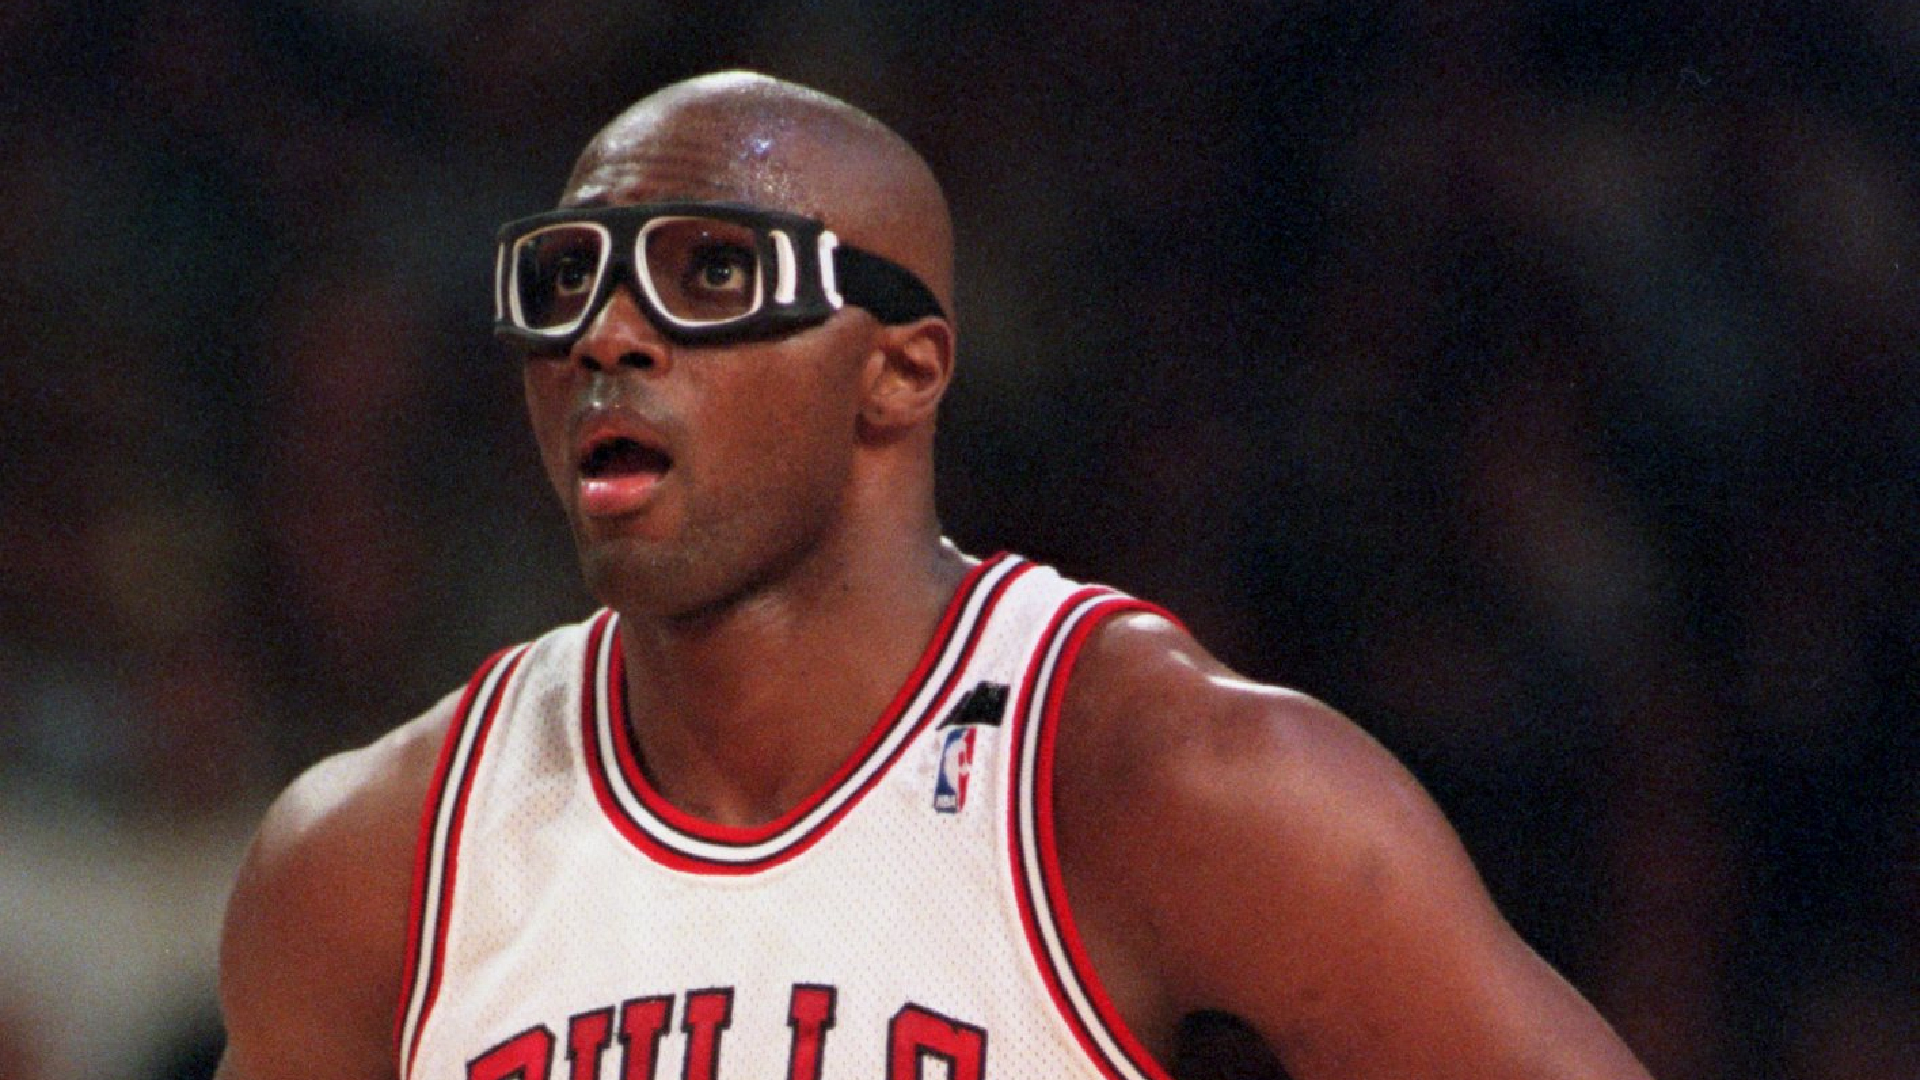 Horace Grant calls Michael Jordan 'a damn snitch,' rebuts claims from 'The Last Dance'